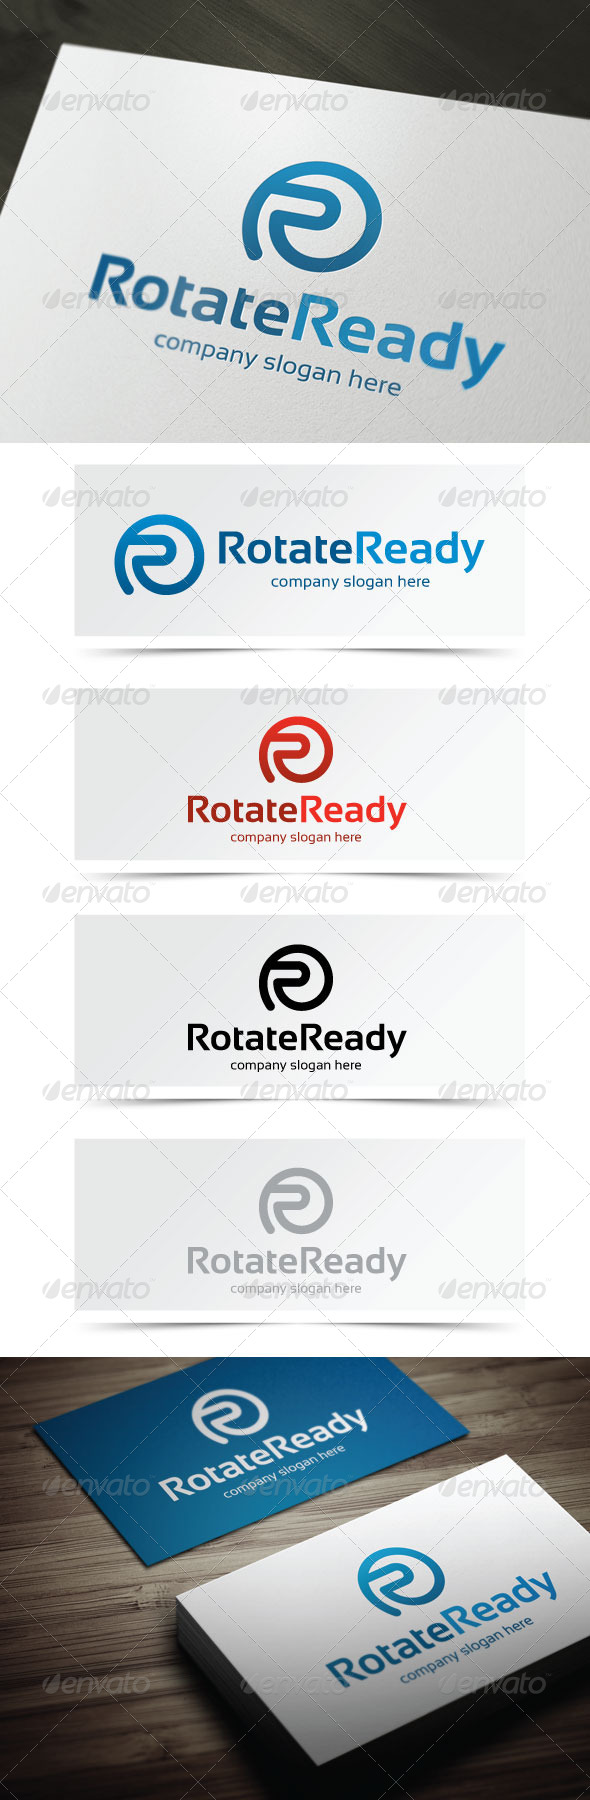 GraphicRiver Rotate Ready 5404388